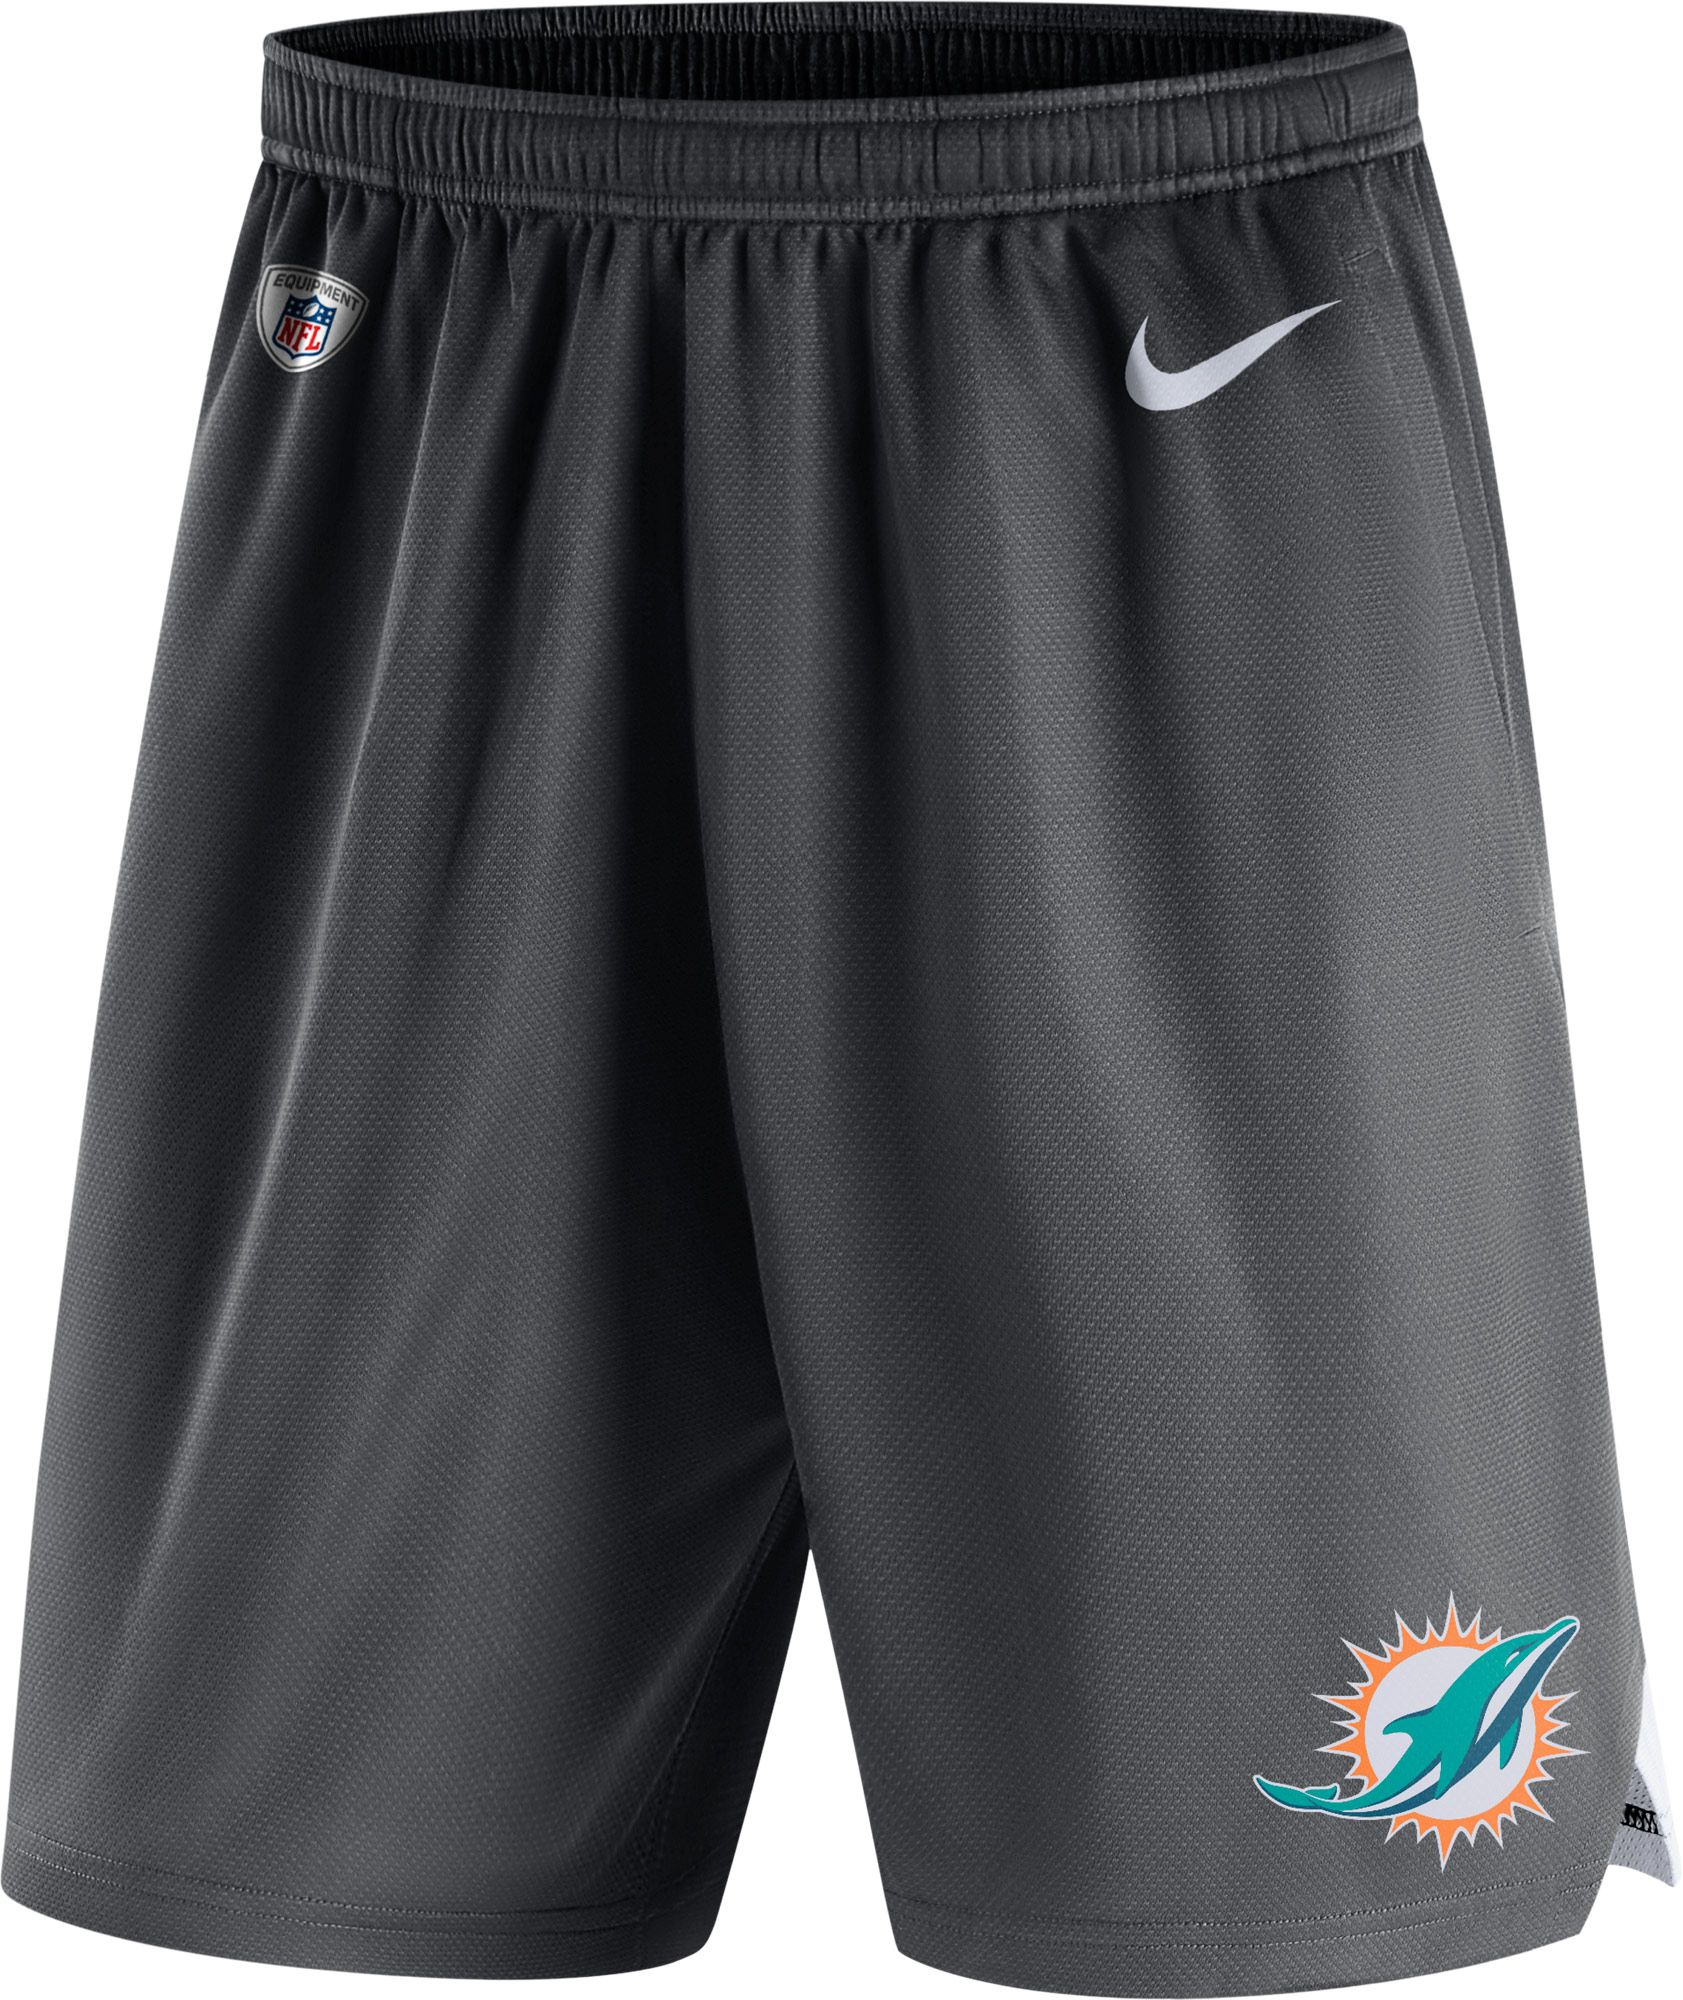 319d318b Nike Men's Miami Dolphins Dry Knit Anthracite Performance Shorts